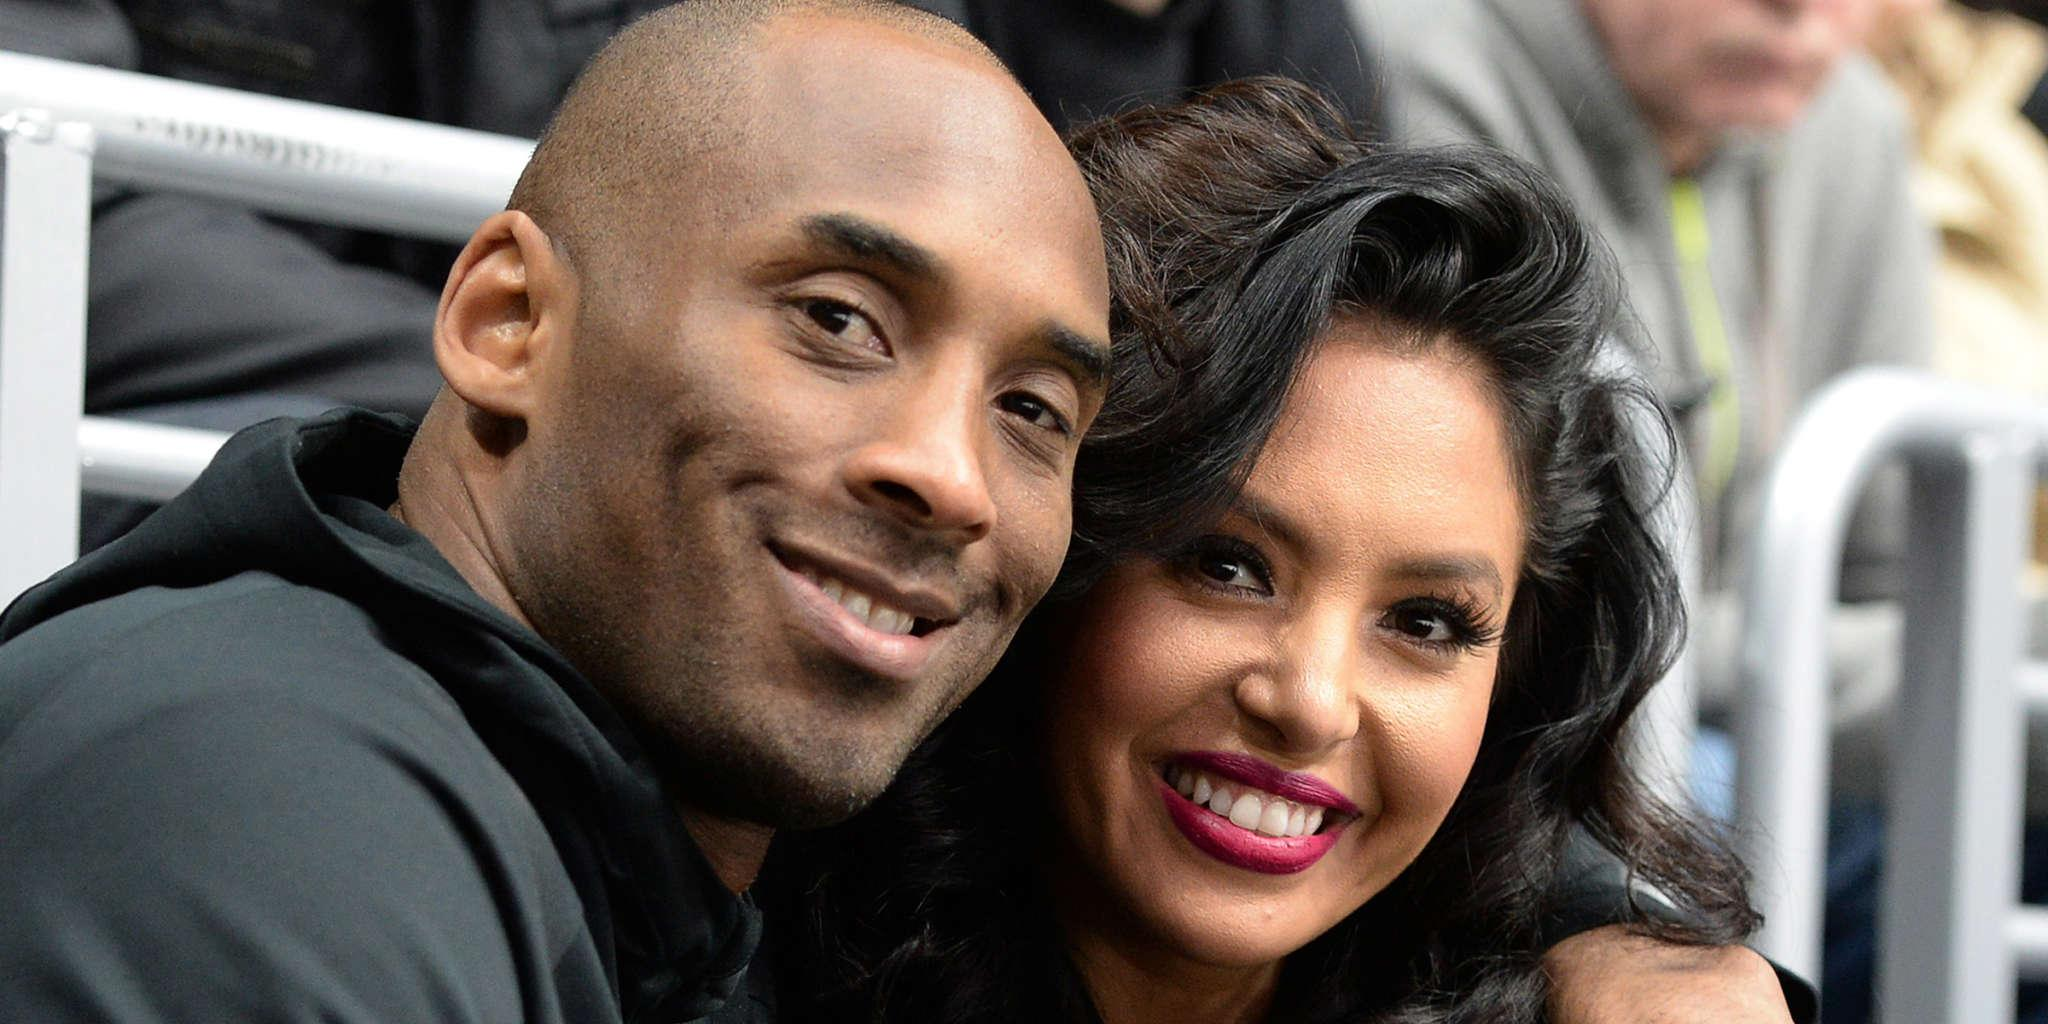 Vanessa Bryant Remembers Kobe Bryant On 'His Favorite Holiday' Valentine's Day: 'I Miss You So Much'